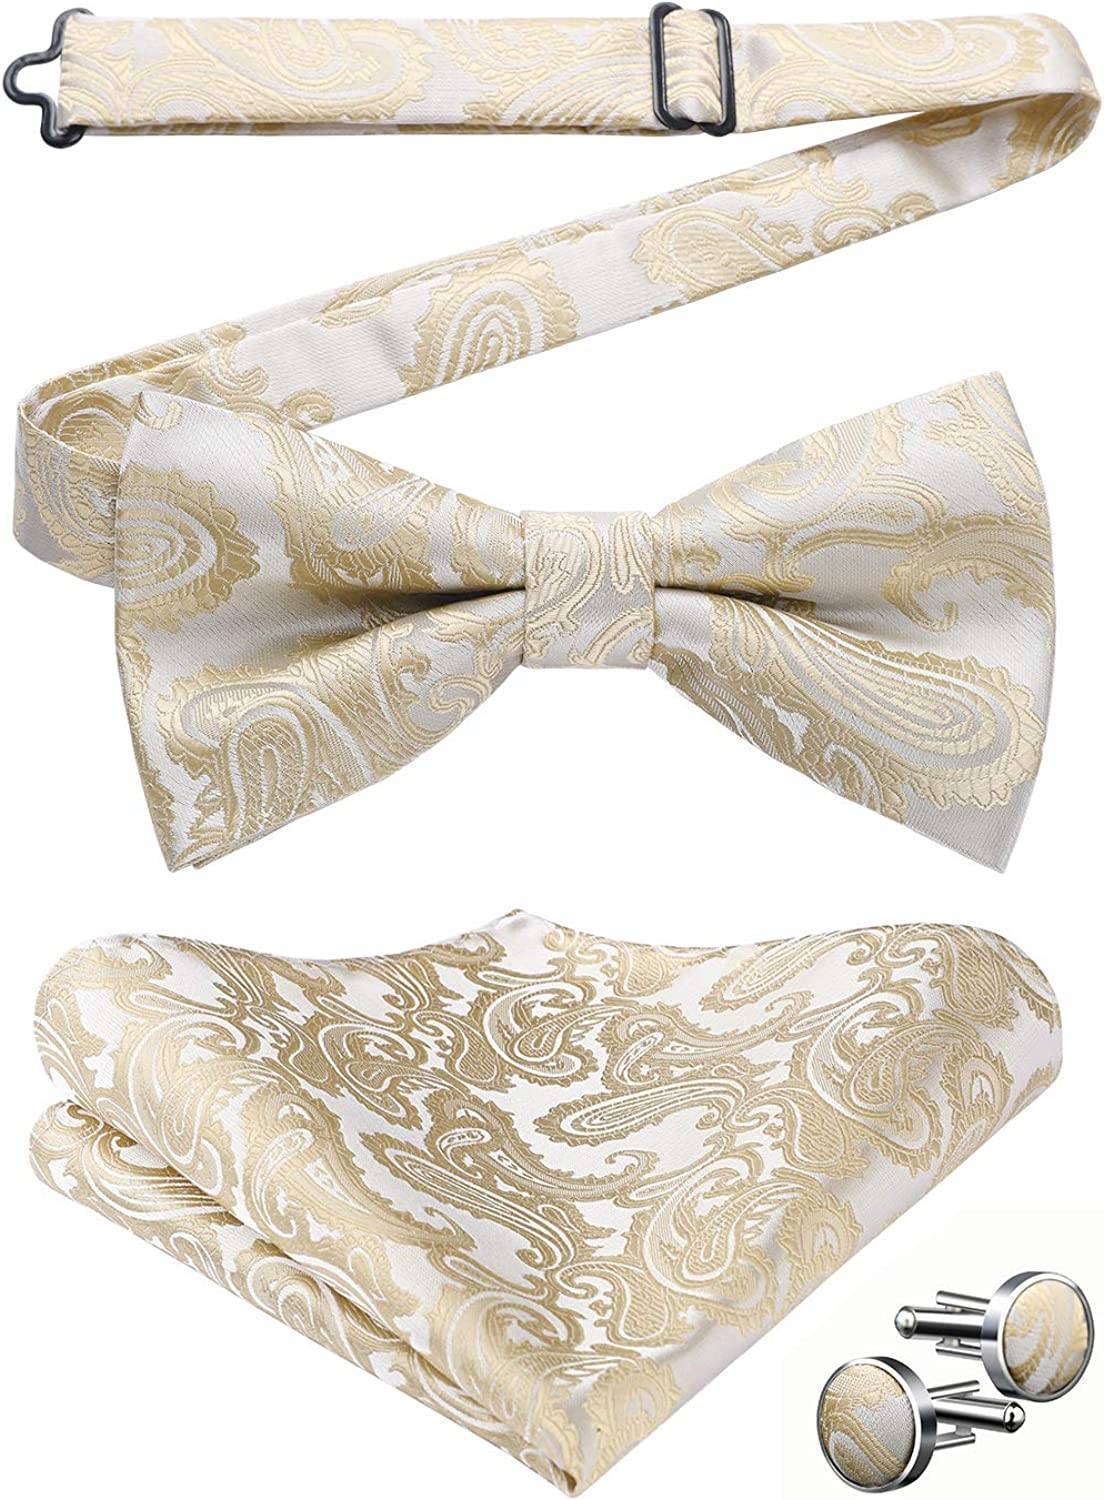 Mens Floral Paisley Pre-tied Bow Tie Classic Formal Satin Woven Silk Bowtie Pocket Square Cufflink Set for Wedding Prom